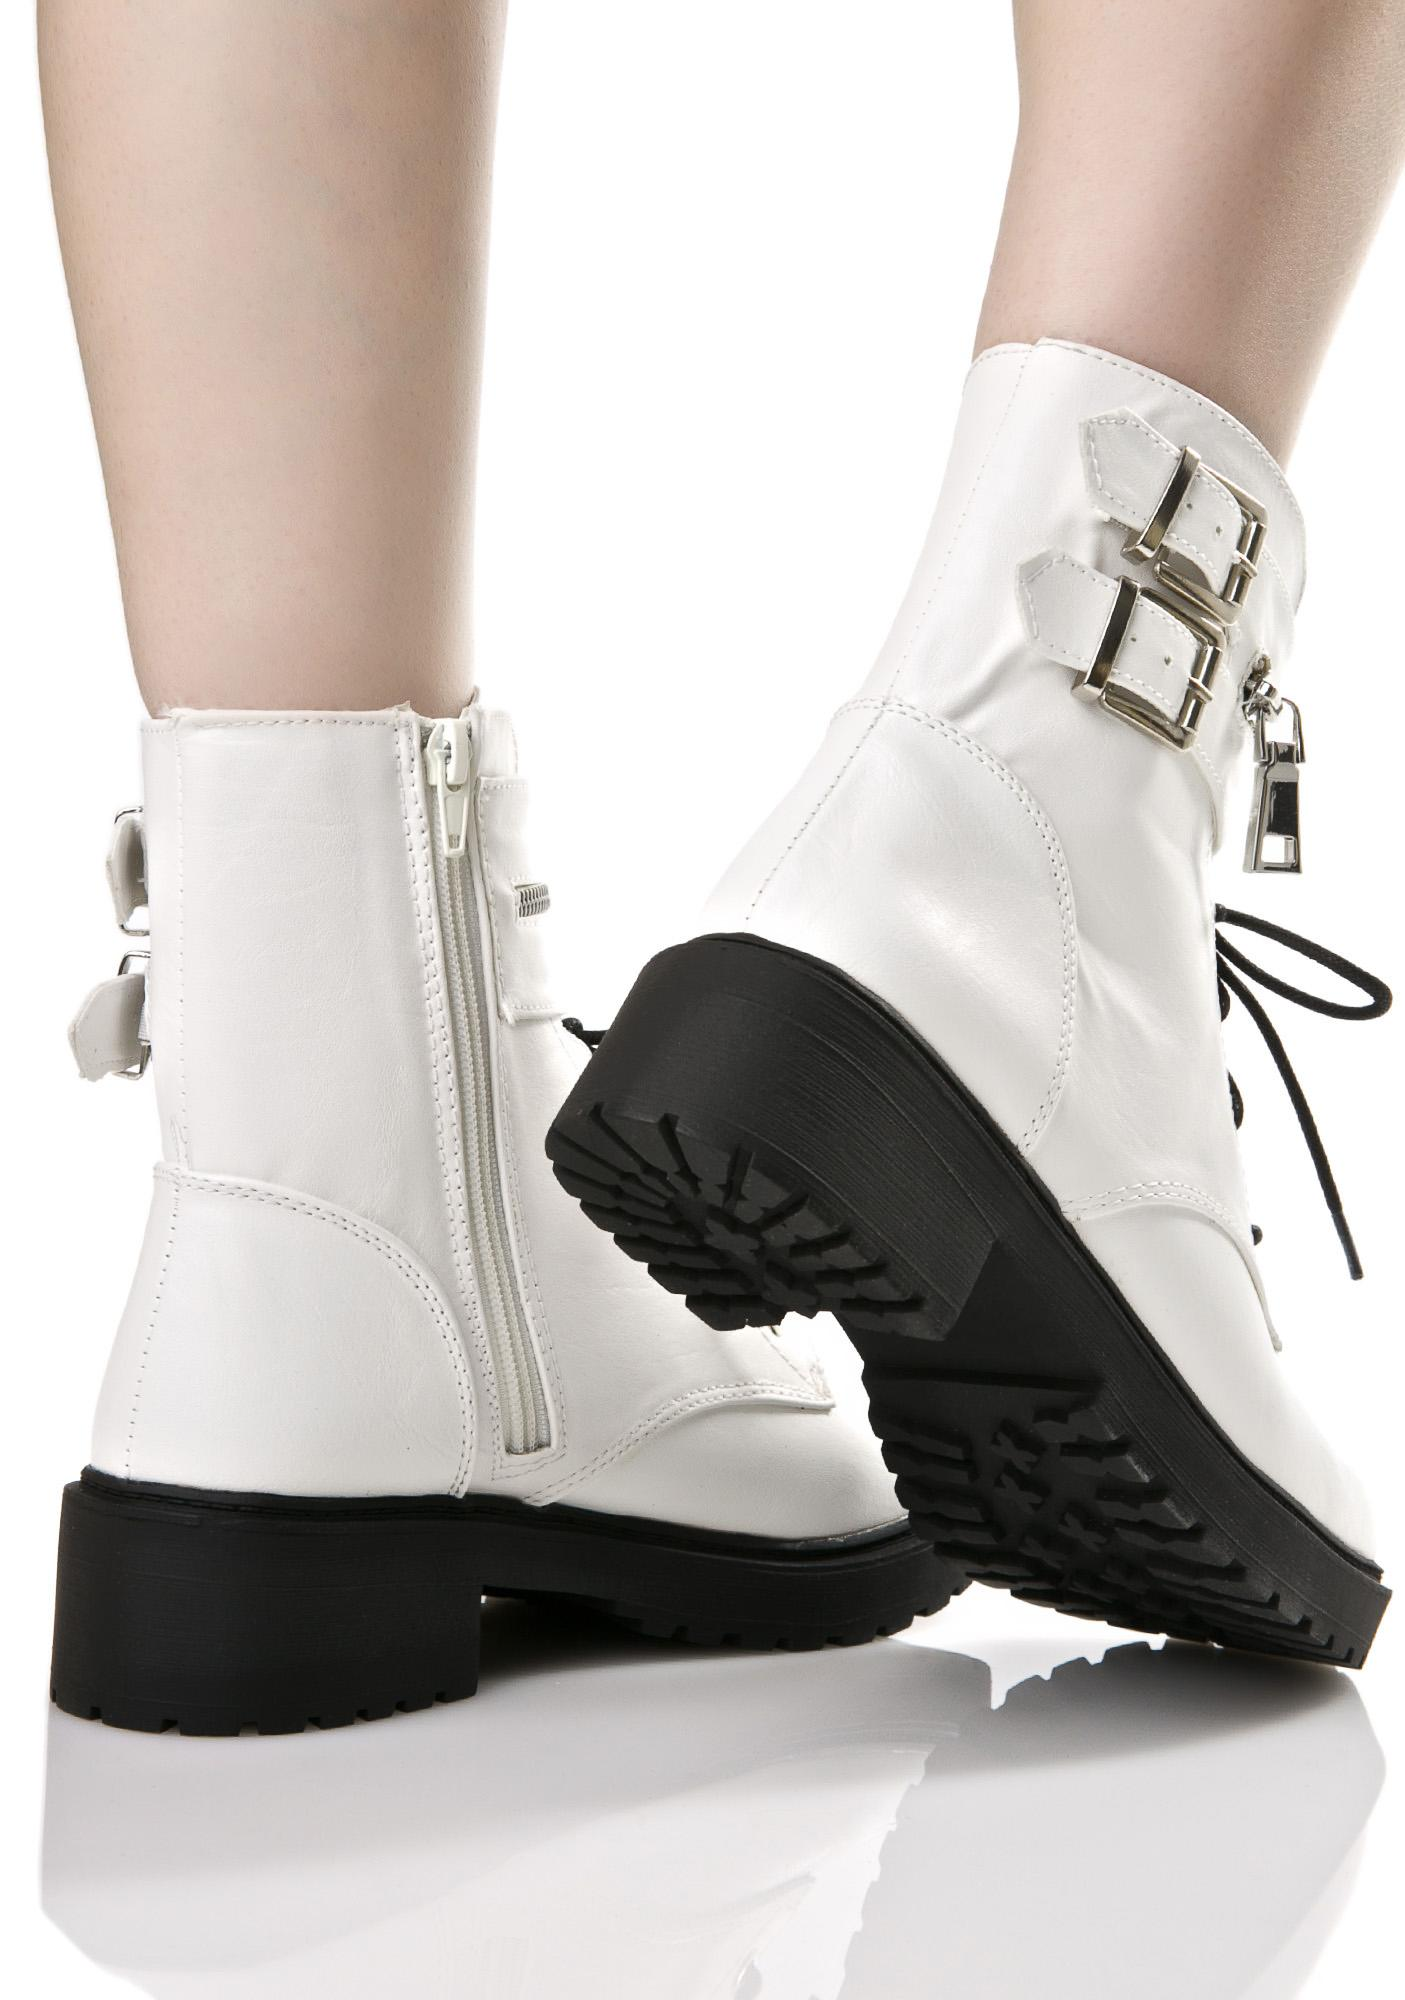 Duplicity Boots